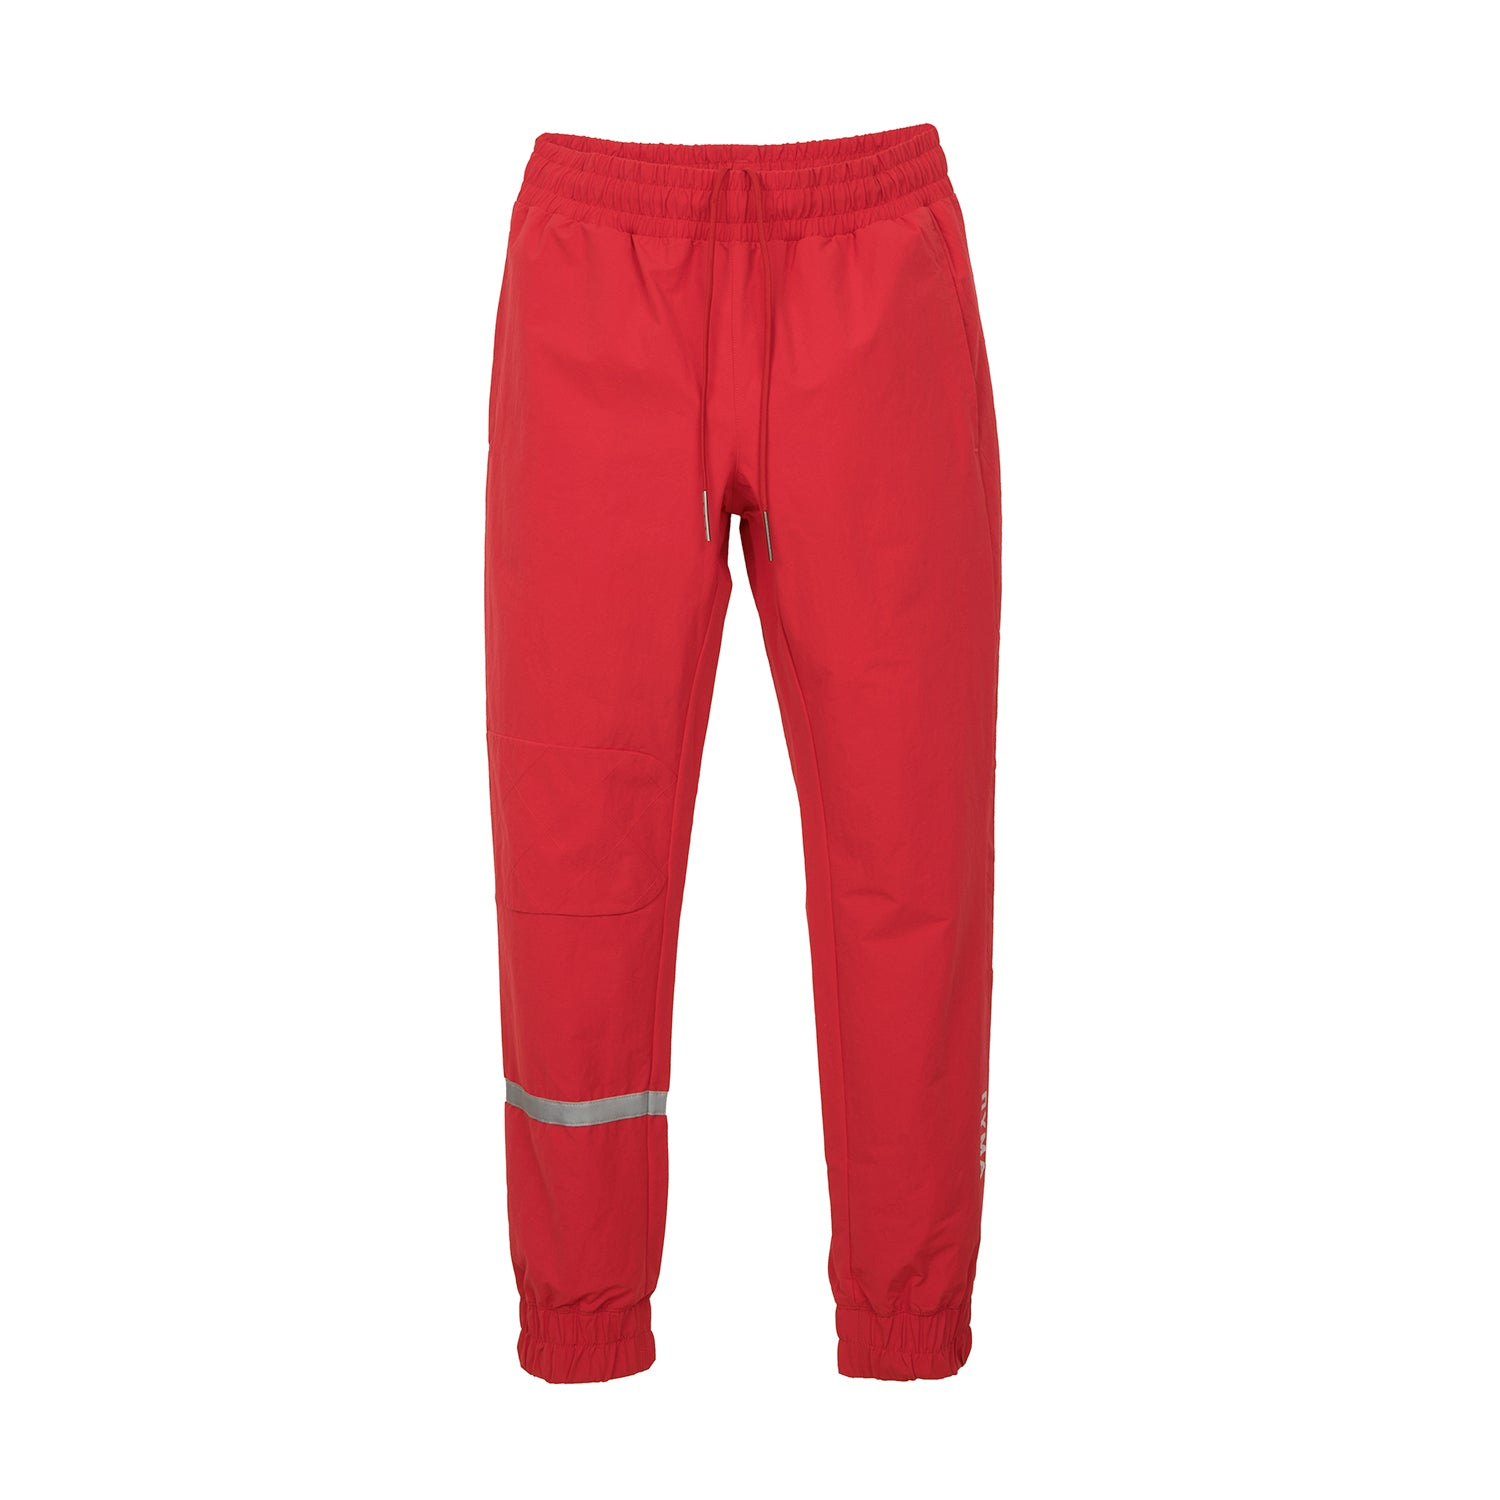 PUMA x O.MOSCOW Track Pants Ribbon Red